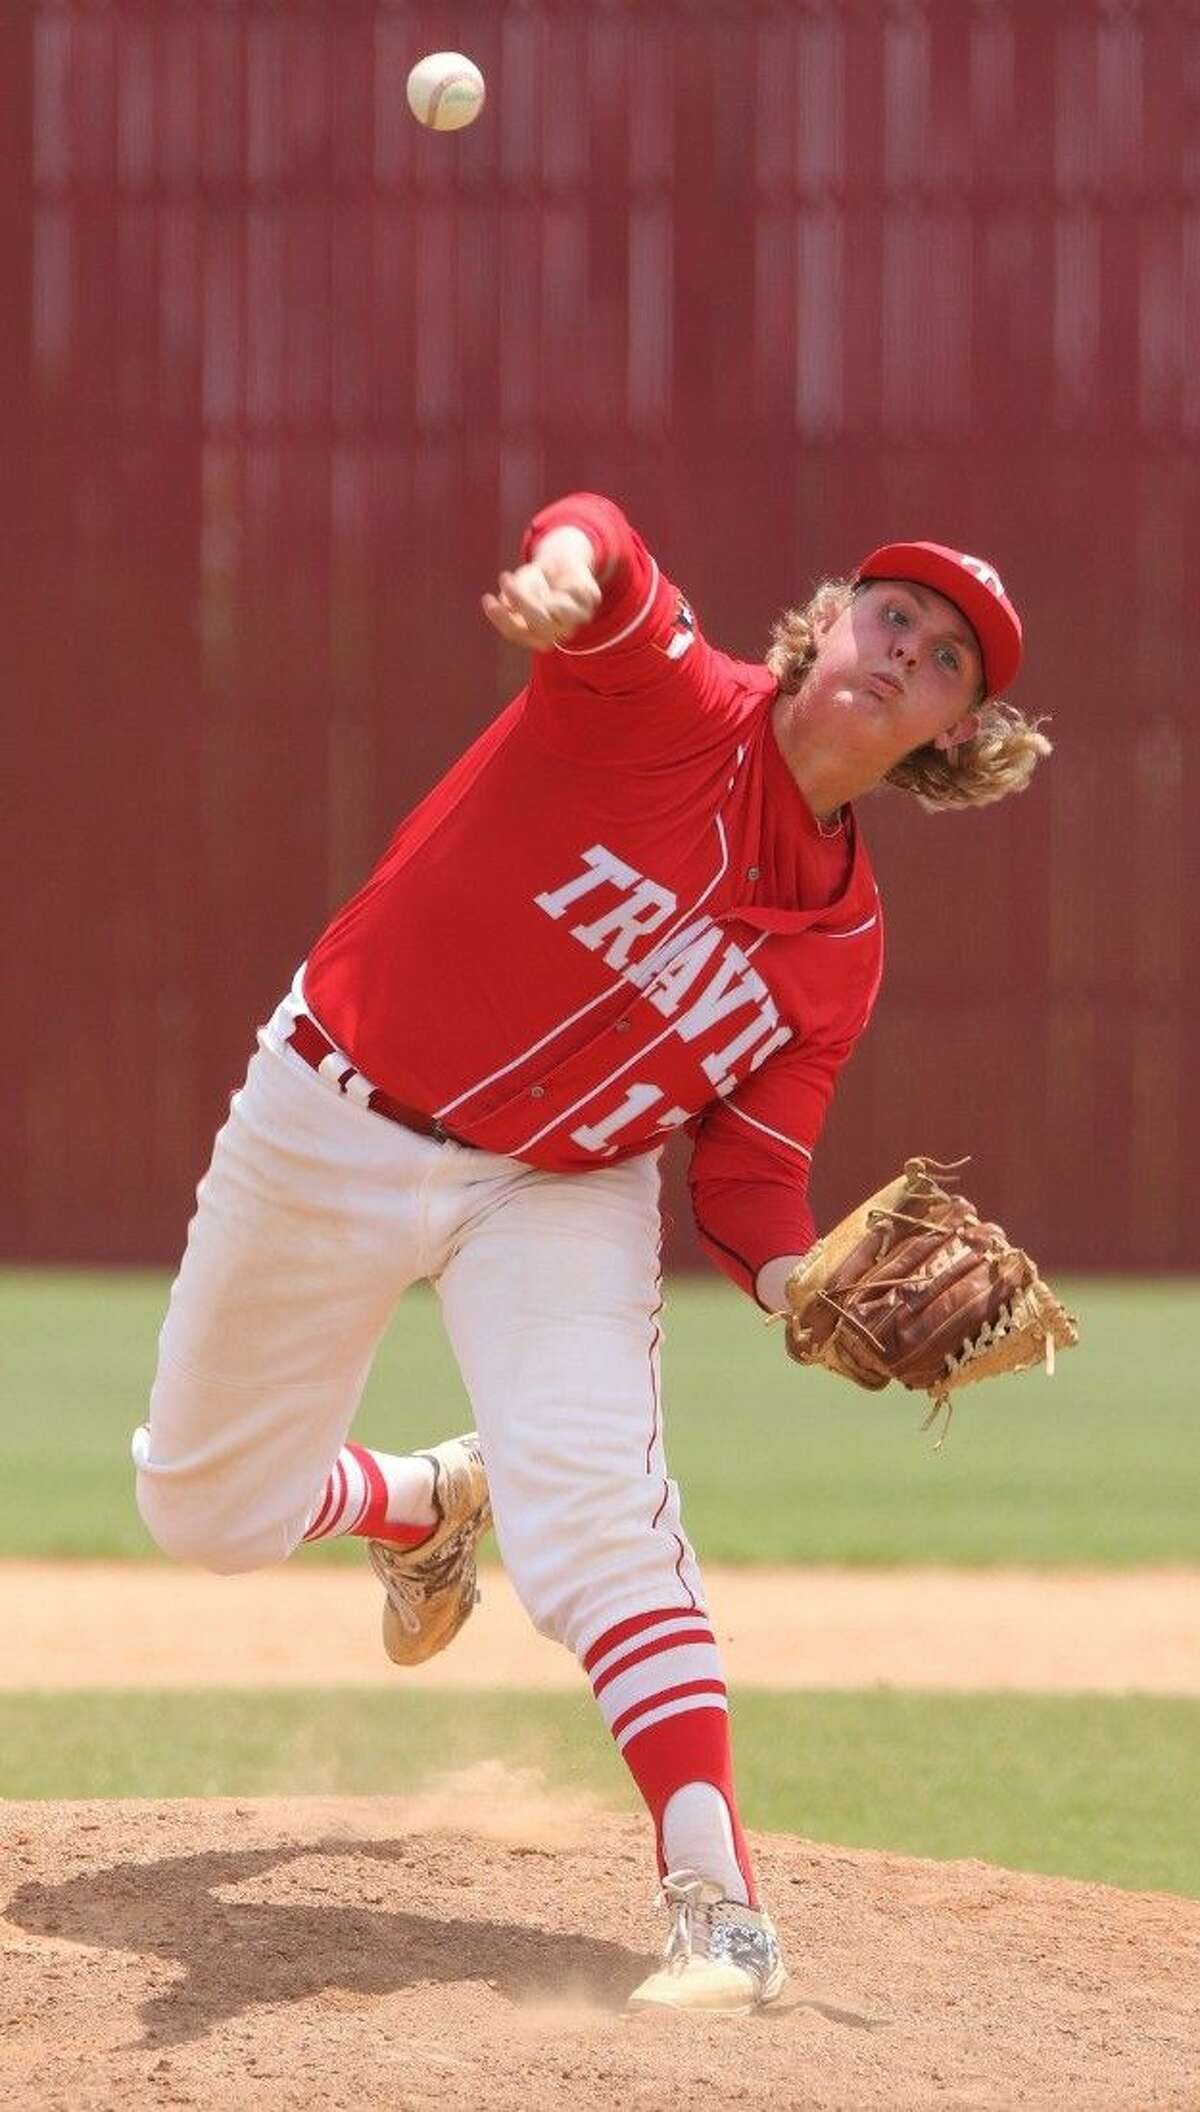 Cole Montgomery finished a no-hitter started by Karsten Fagan as Travis defeated Clements 2-0 on April 1. The Tigers have allowed 12 runs in 10 district games, recording six shutouts.